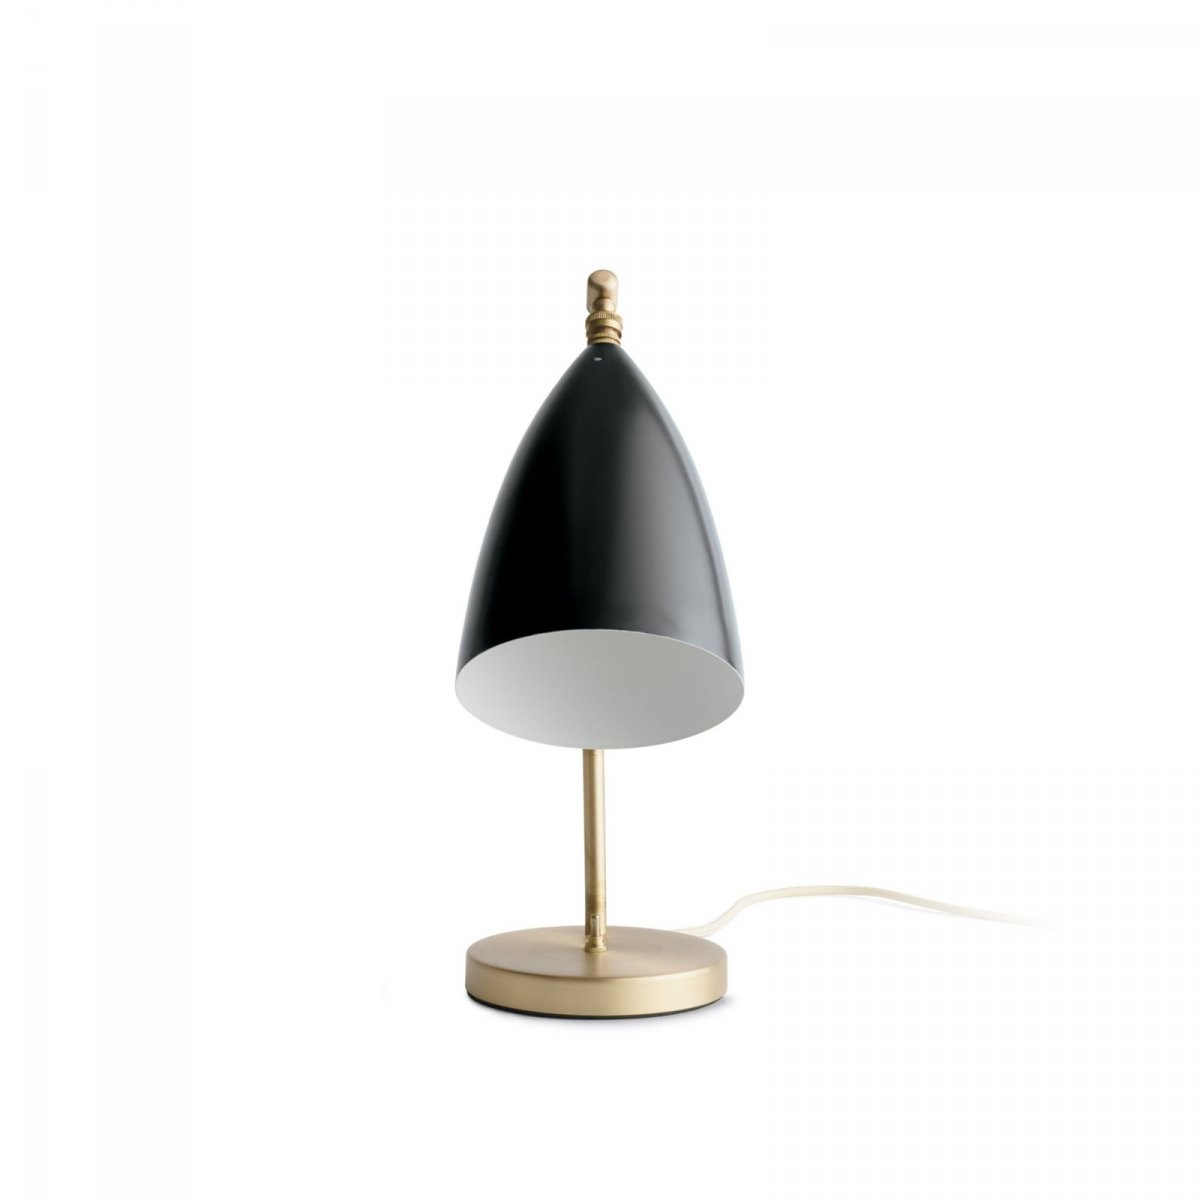 Grossman Gr 195 164 Shoppa Task Table Lamp By Greta M Grossman